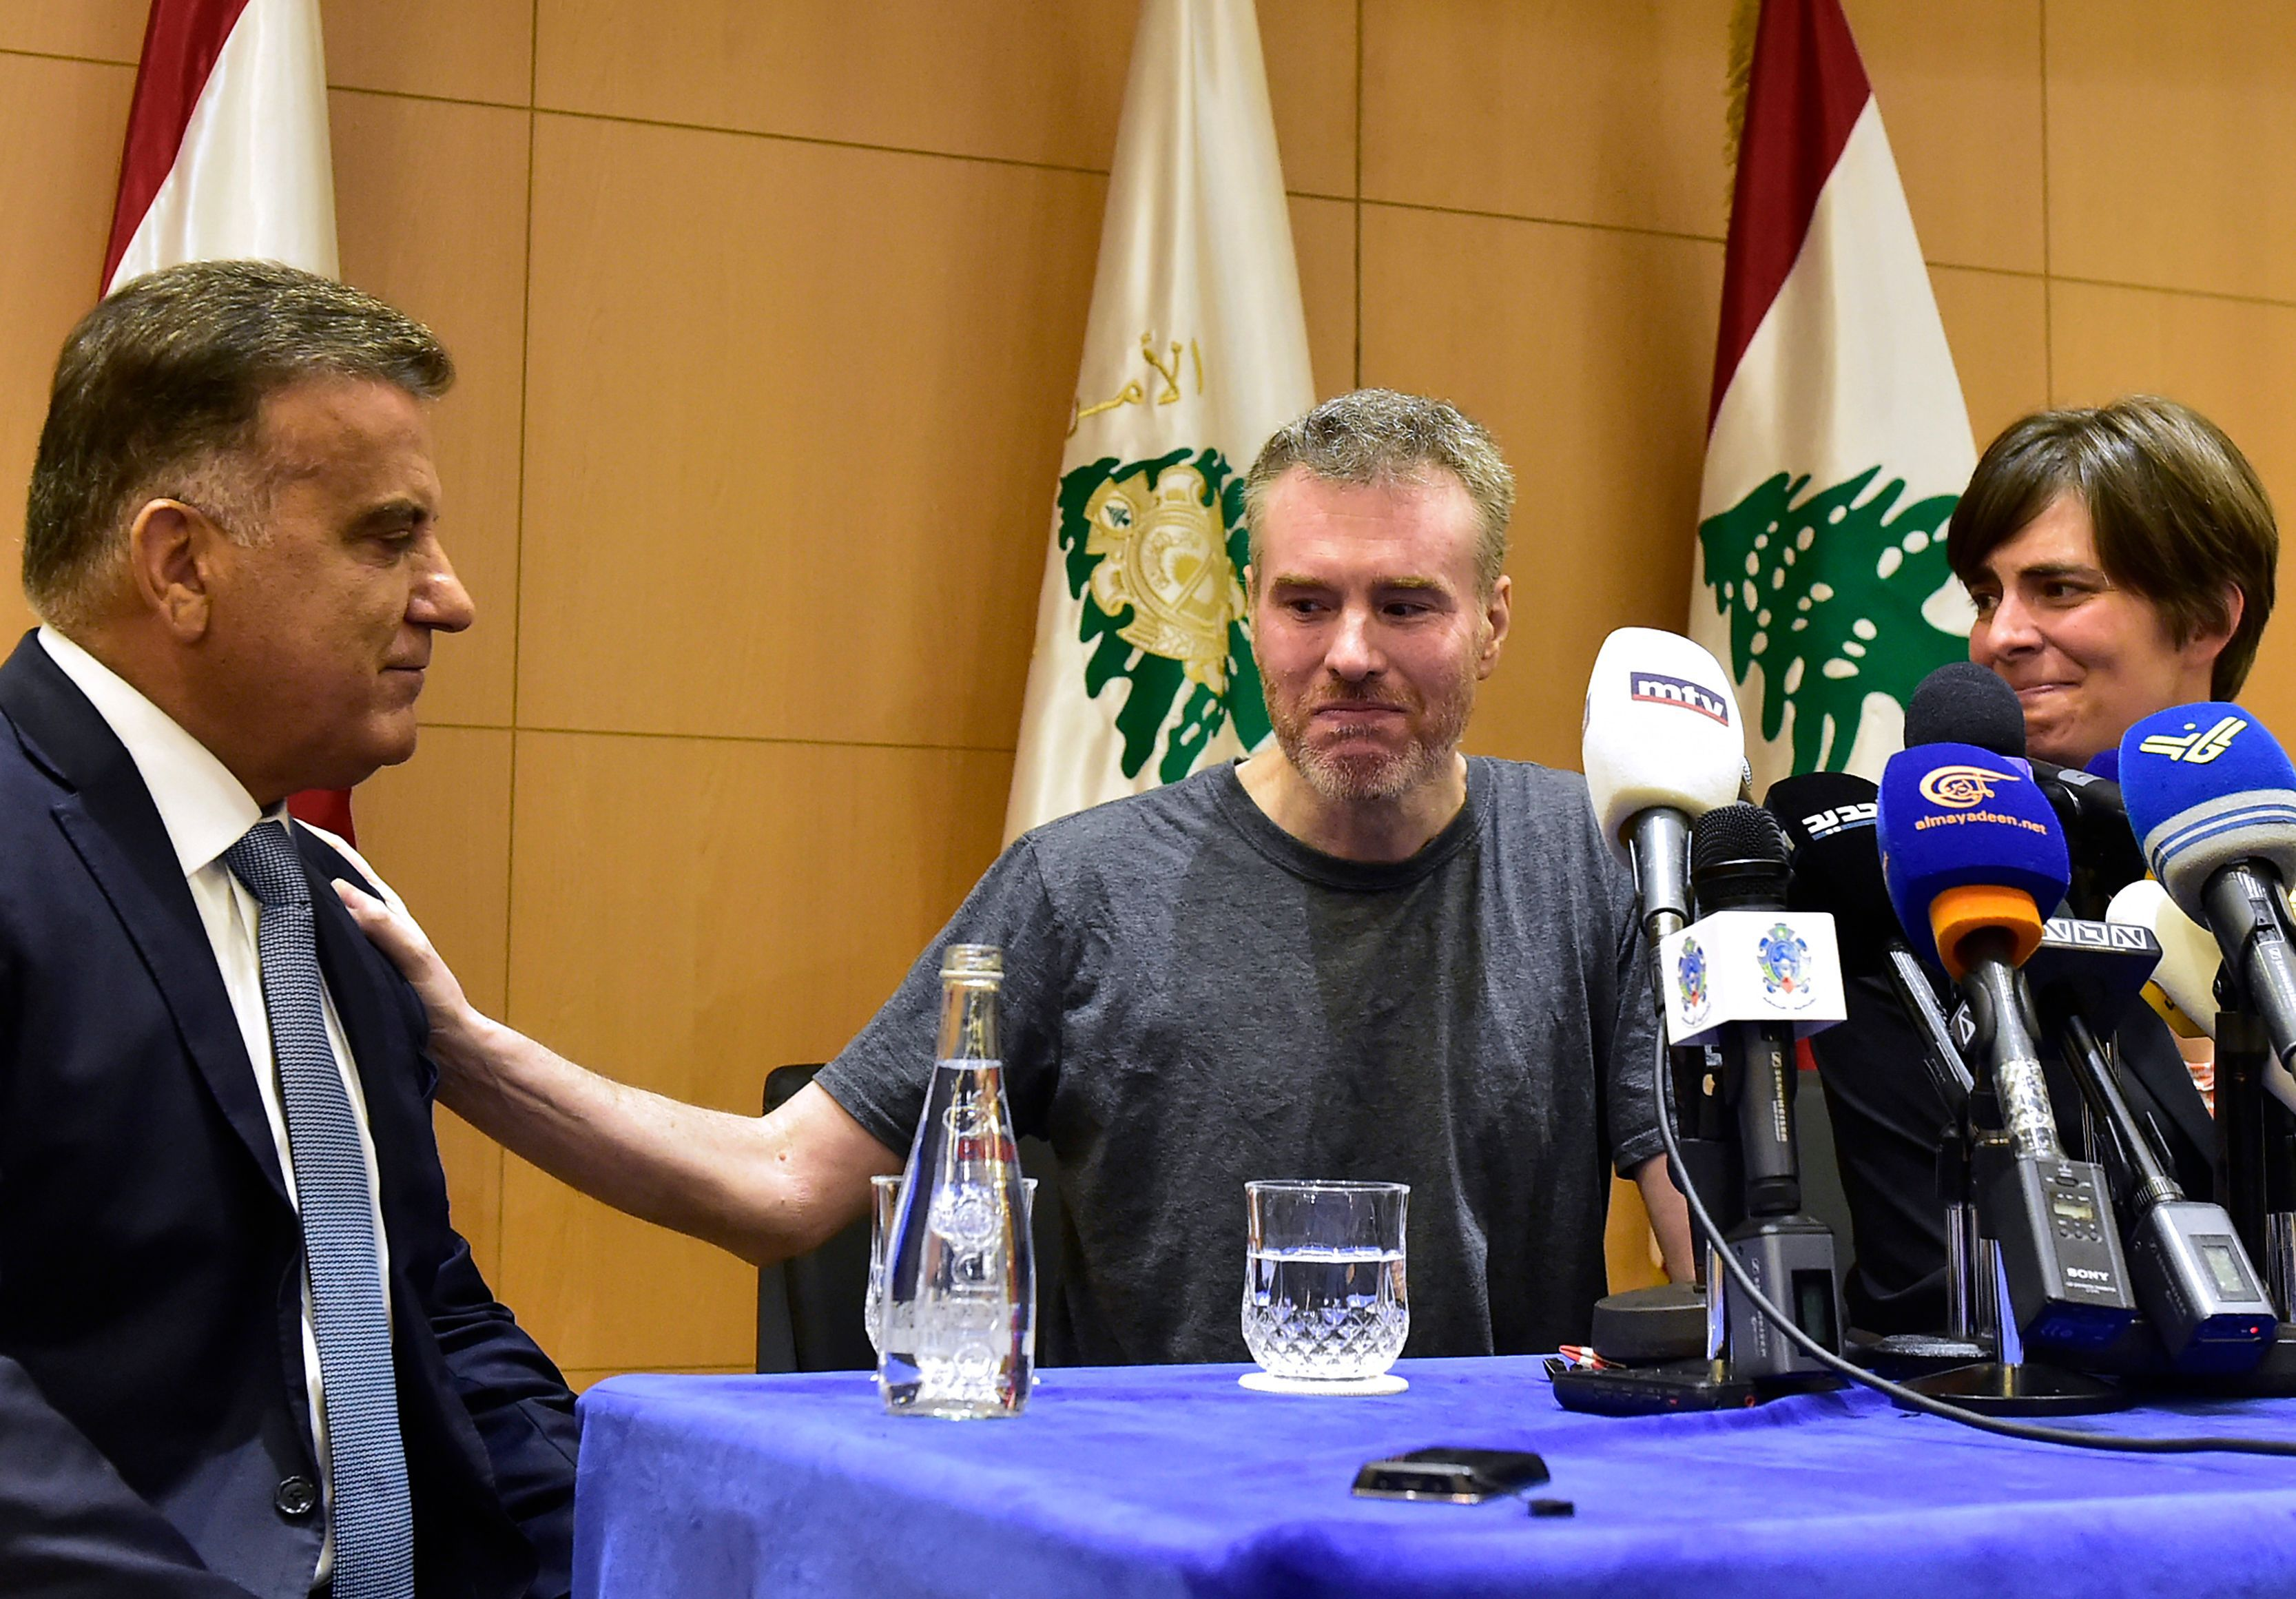 Canadian tourist, Kristian Lee Baxter, during a press conference in Beirut alongside the General Director of the Lebanese Security Abbas Ibrahim - 9 August, 2019 (AFP)